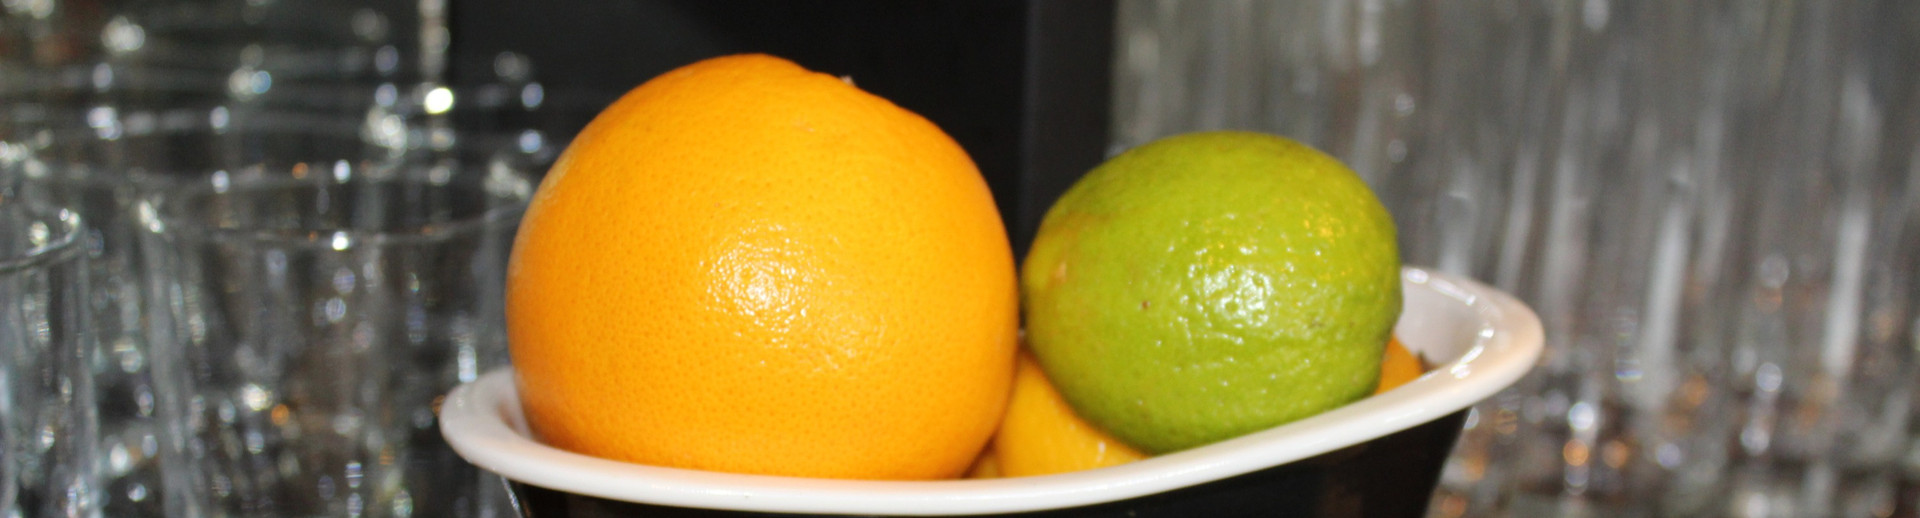 Lemons, Limes and Oranges